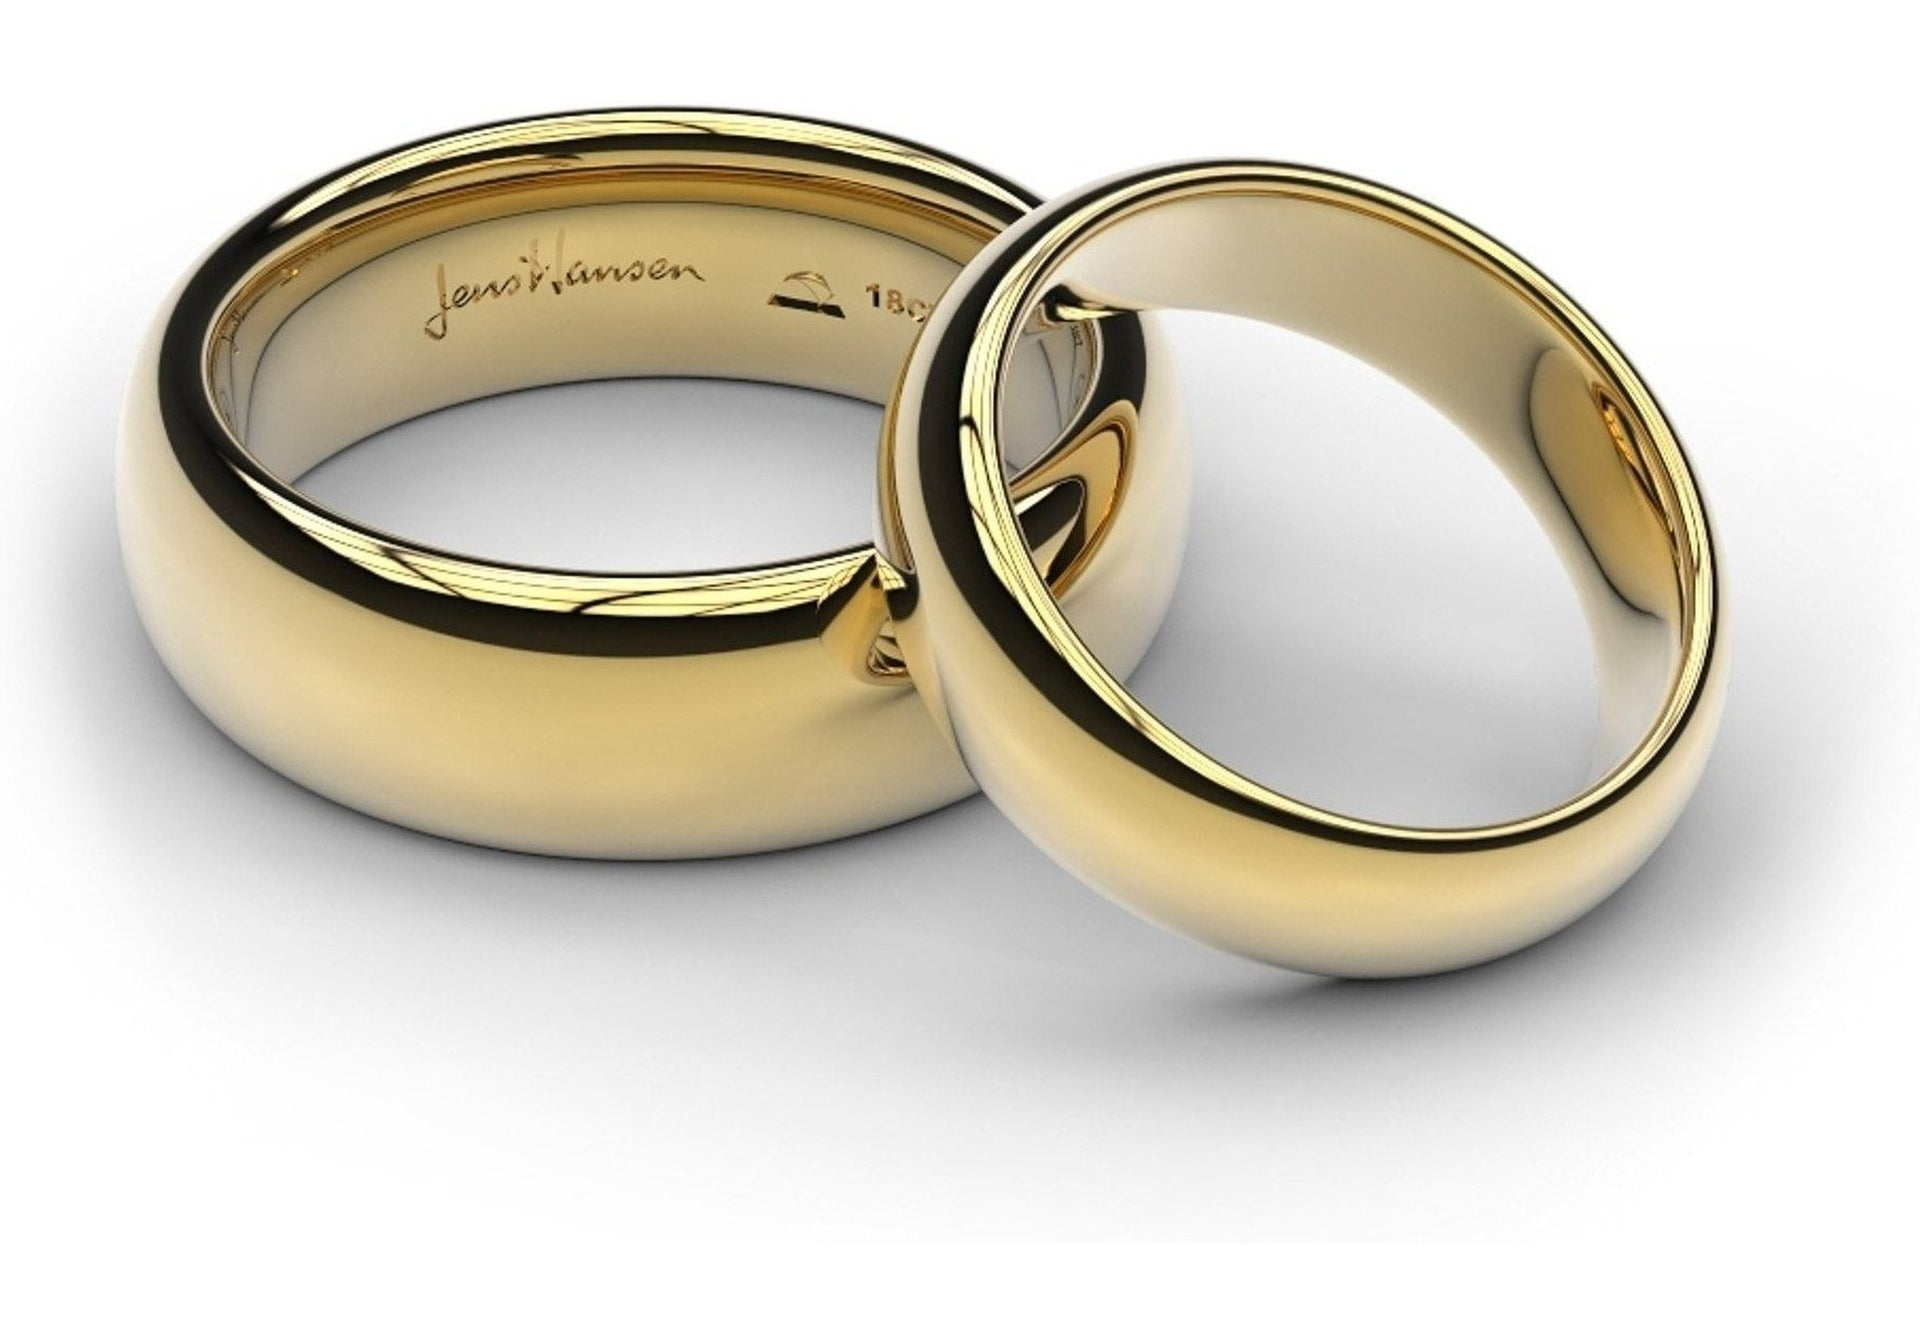 yellow gold replica rings set - Wedding Ring Photos